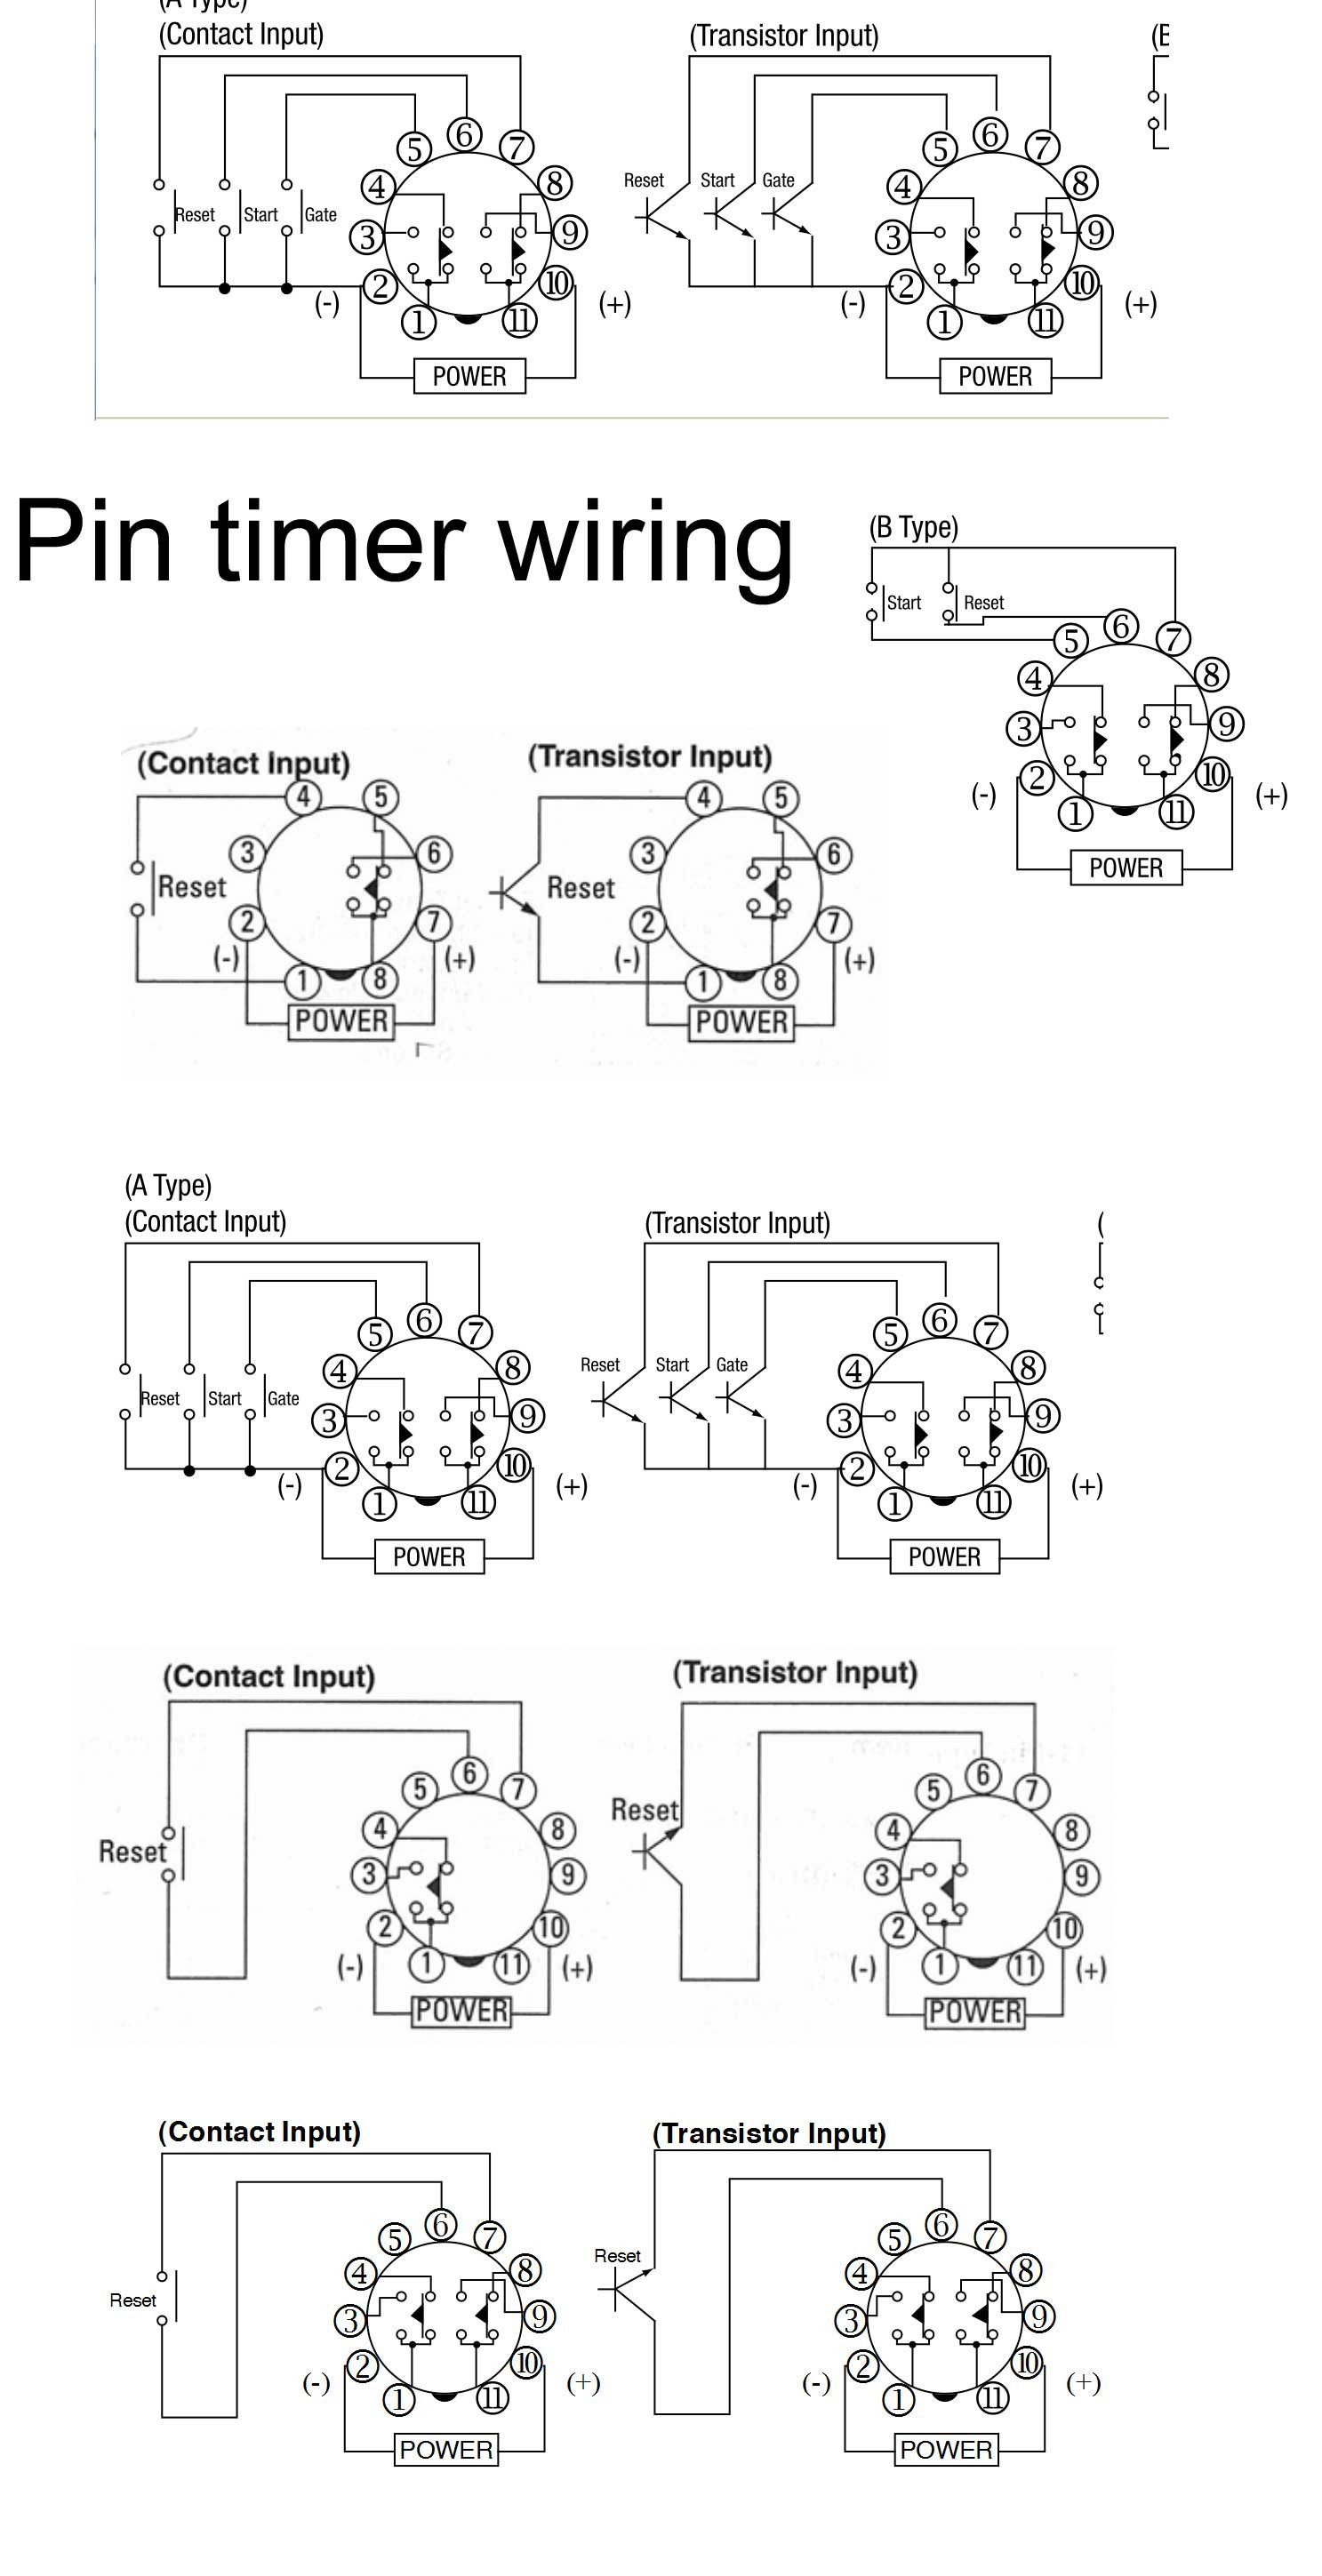 Starter Motor Relay Wiring Diagram from wholefoodsonabudget.com